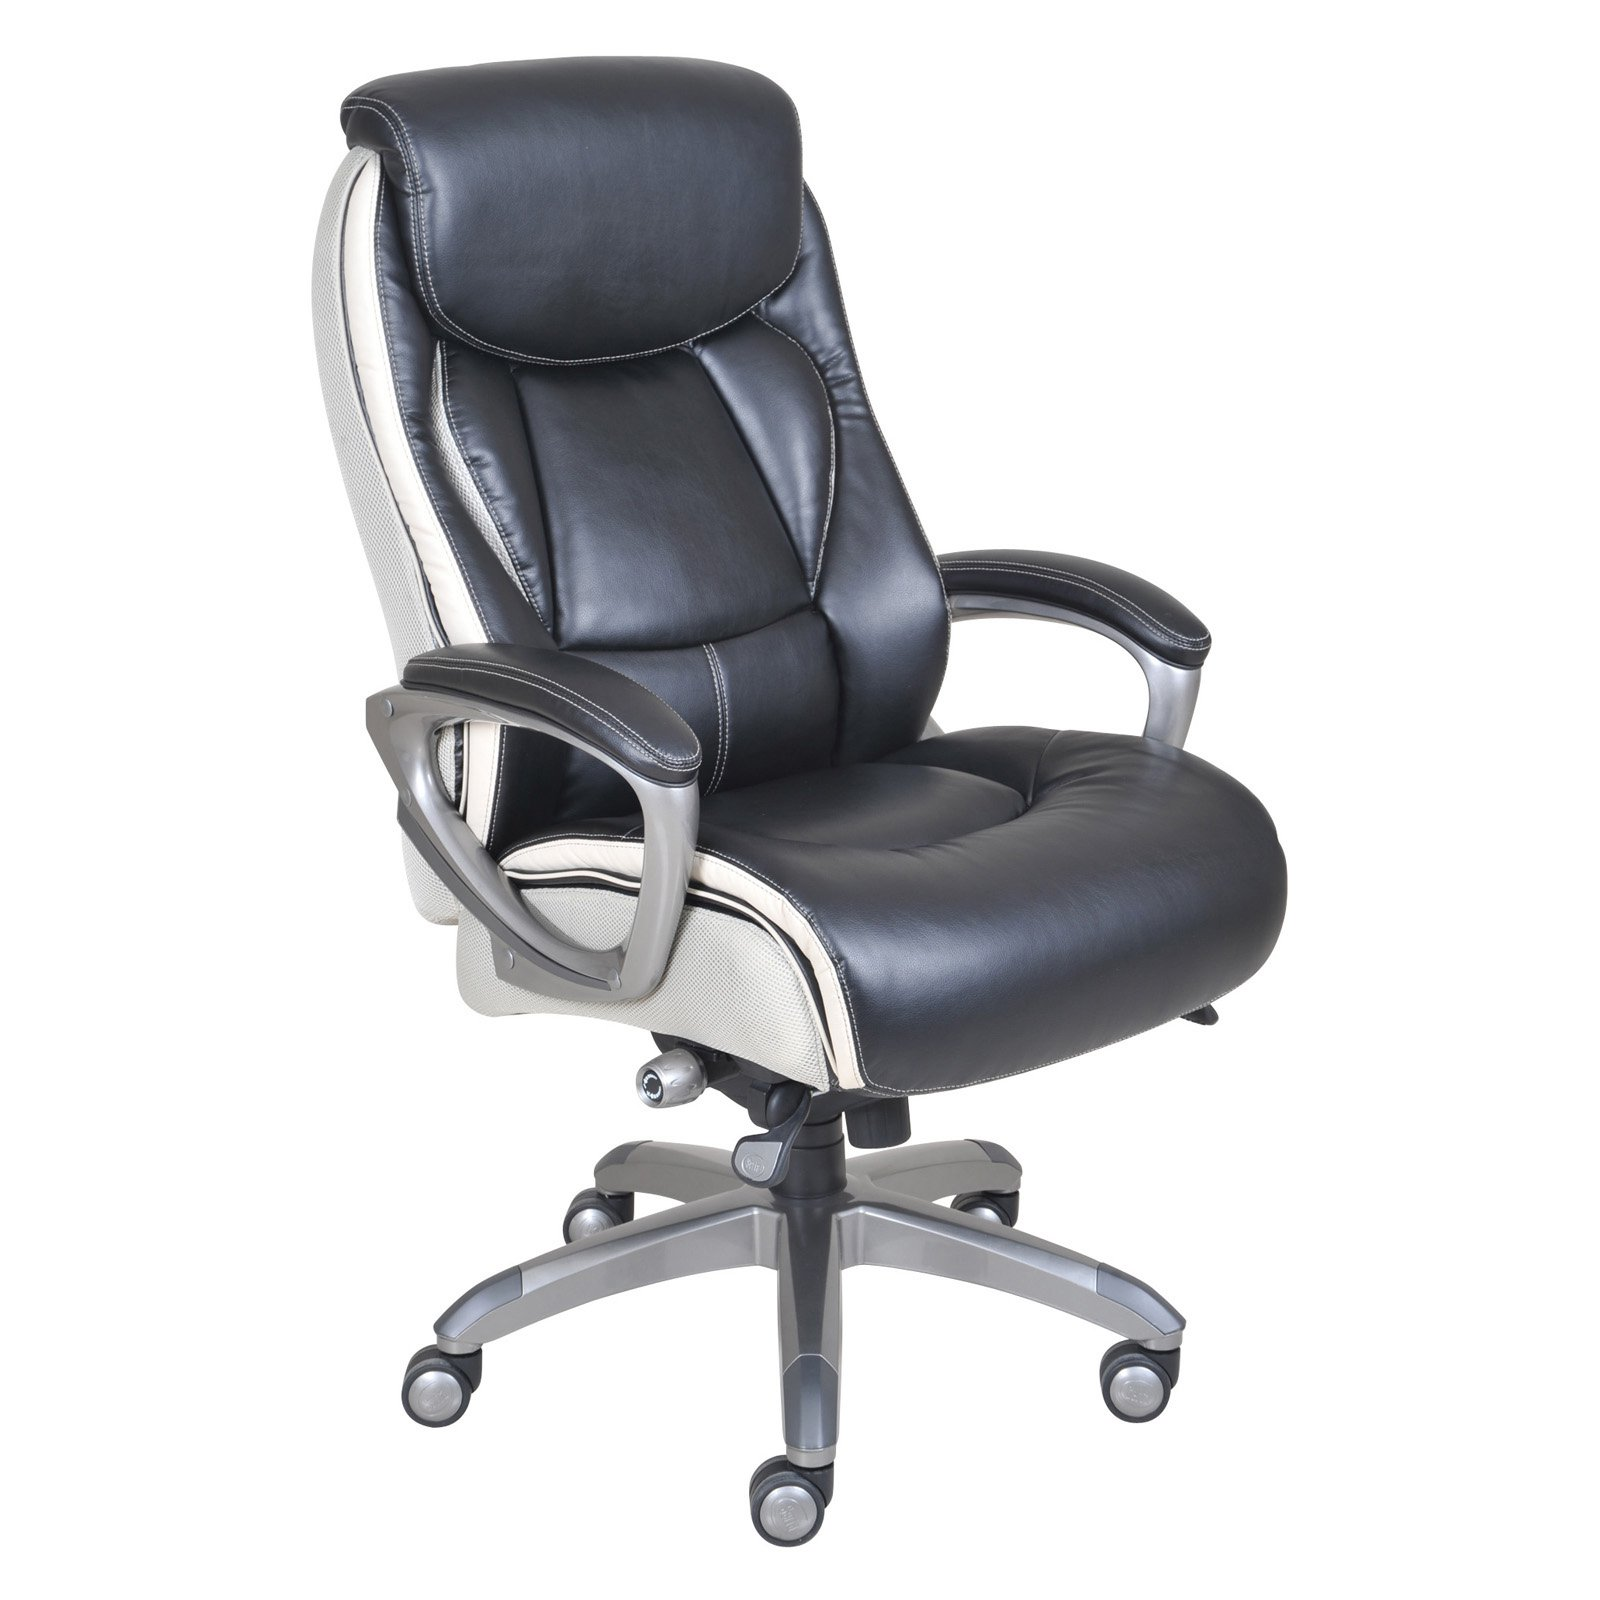 Office Furniture At Walmart: Serta Smart Layers Executive Office Chair, Tranquility